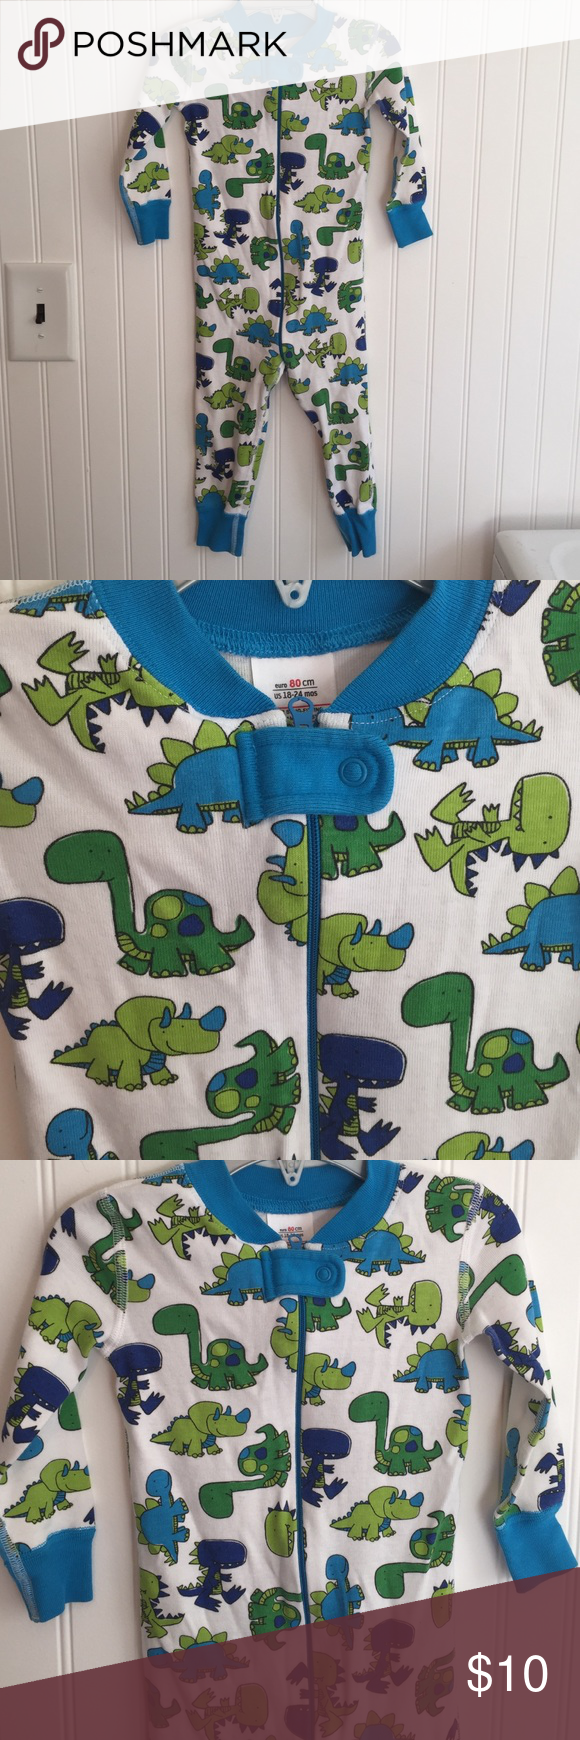 Organic pjs from Hanna Andersson 18-24months Organic sleepwear pjs from Hanna Andersson 18-24months with dinosaurs Hanna Andersson Pajamas Pajama Sets